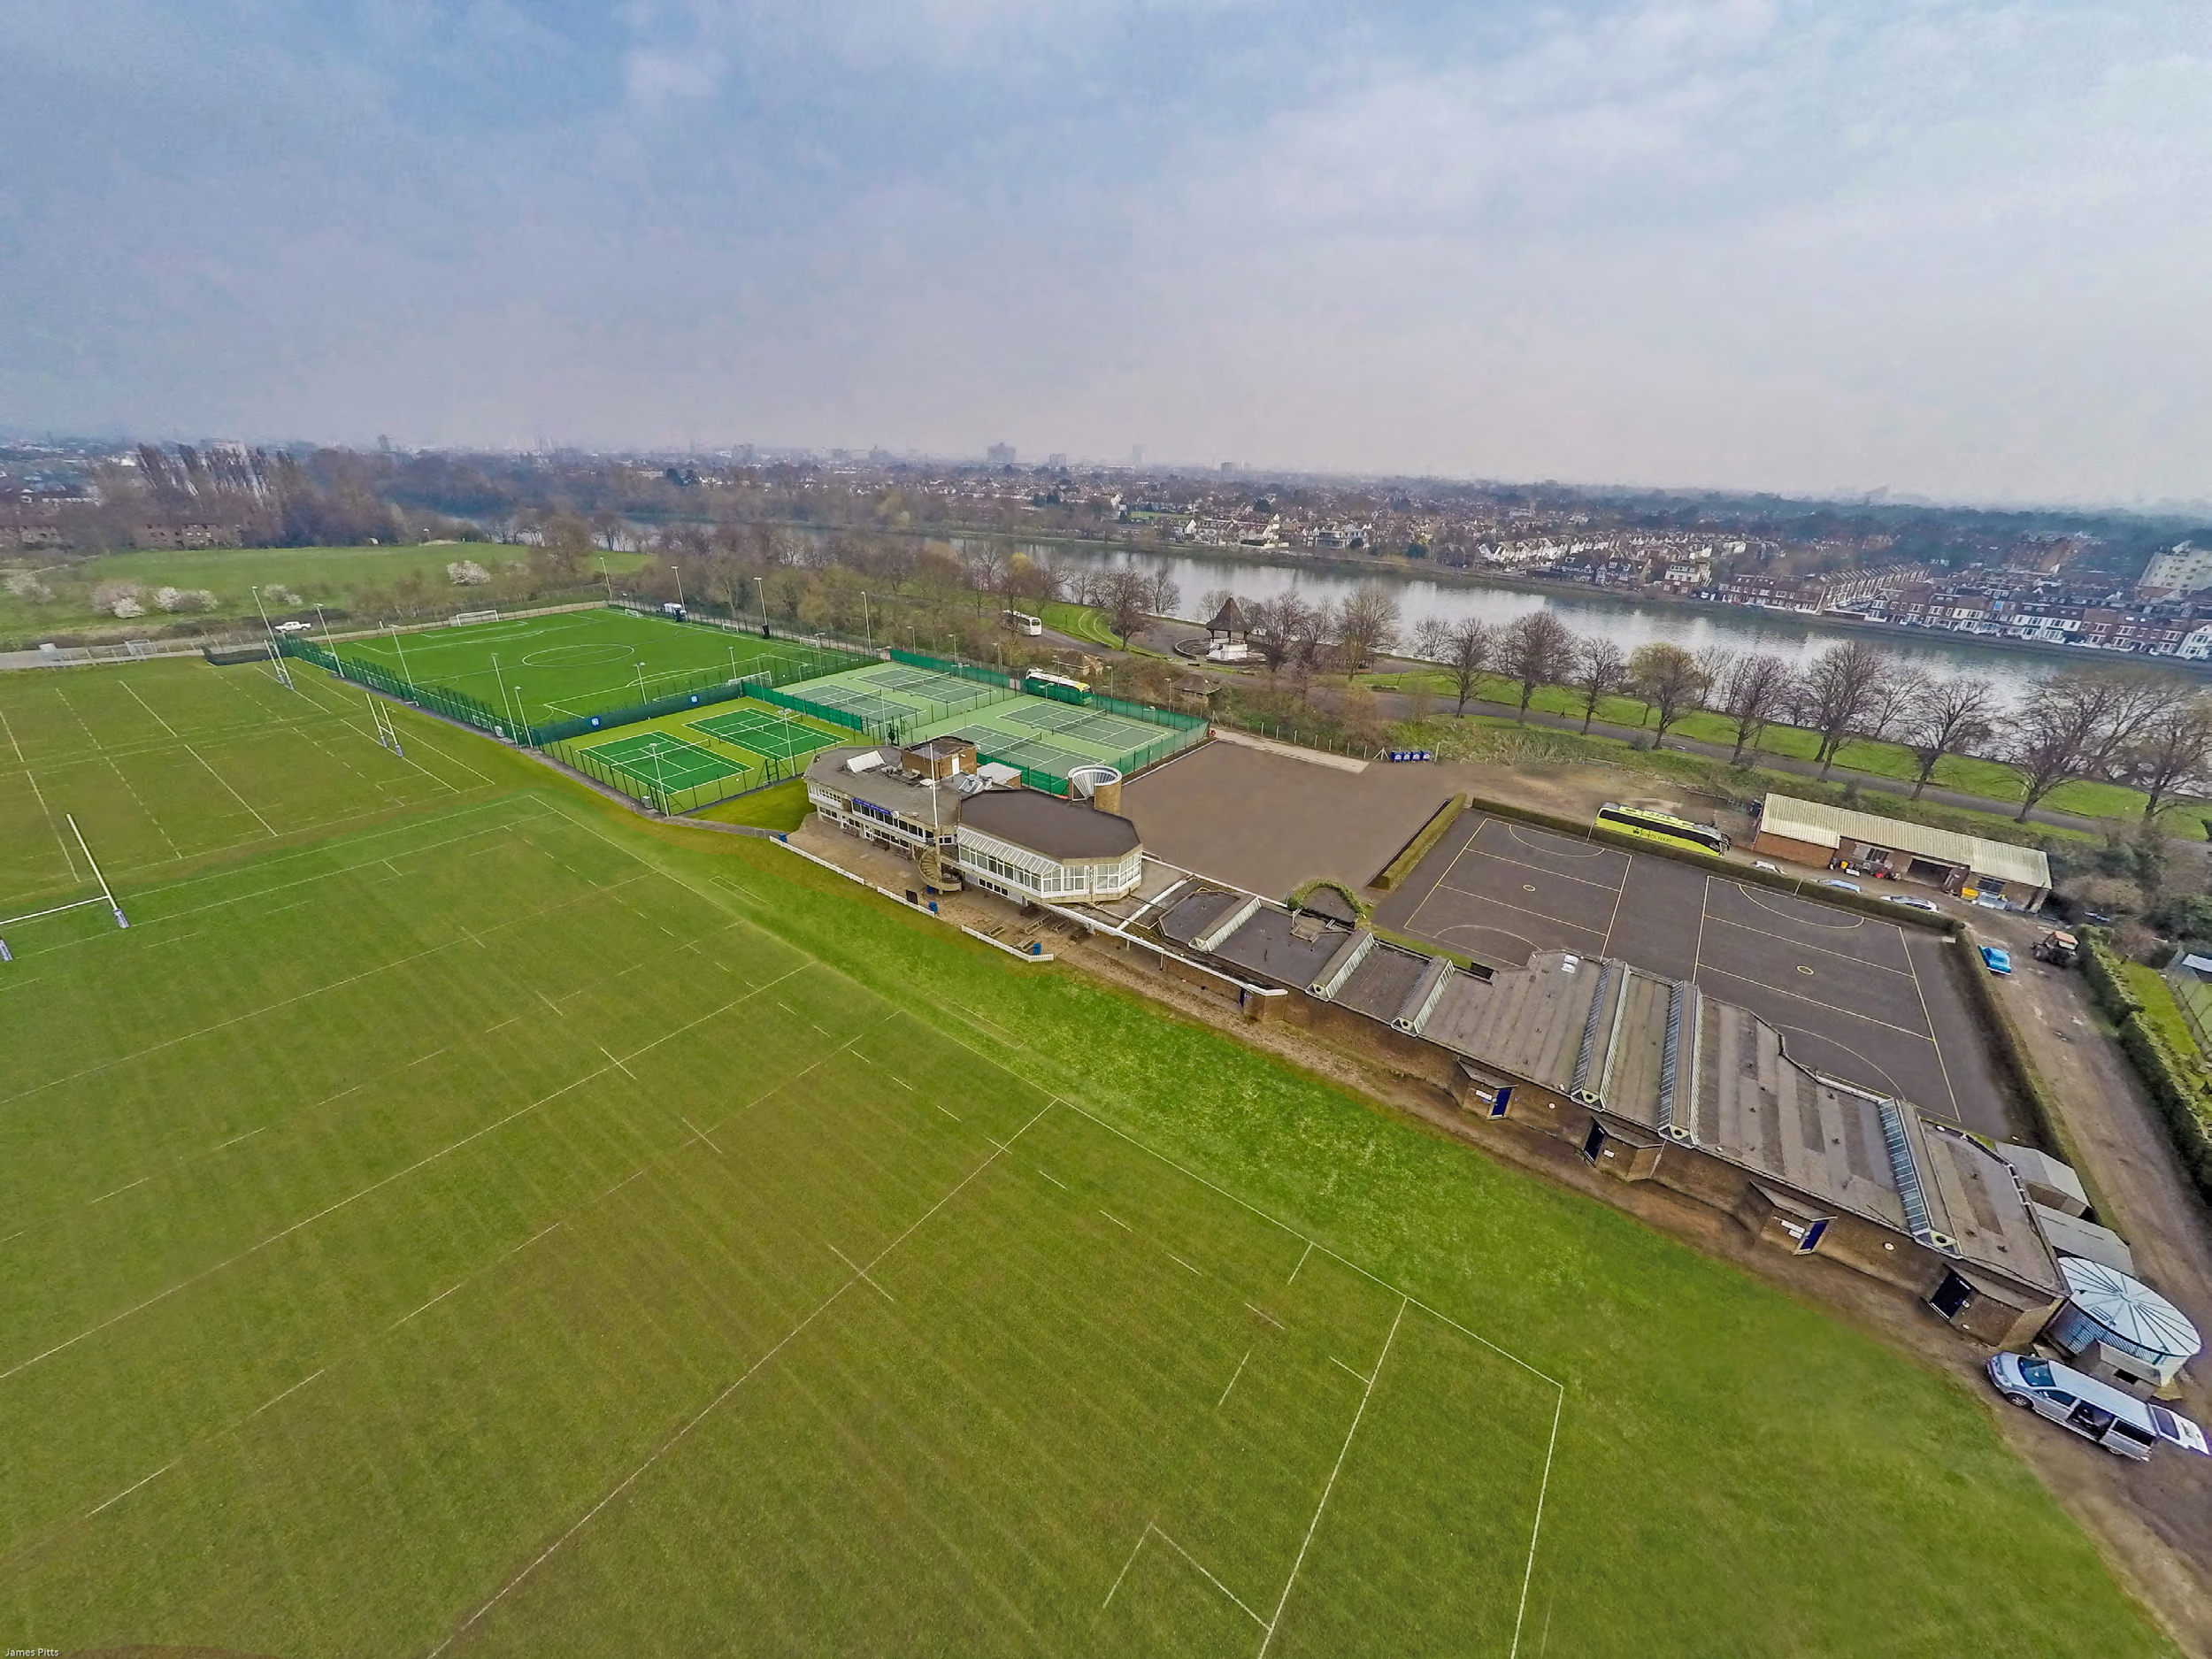 kings-house-sports-ground